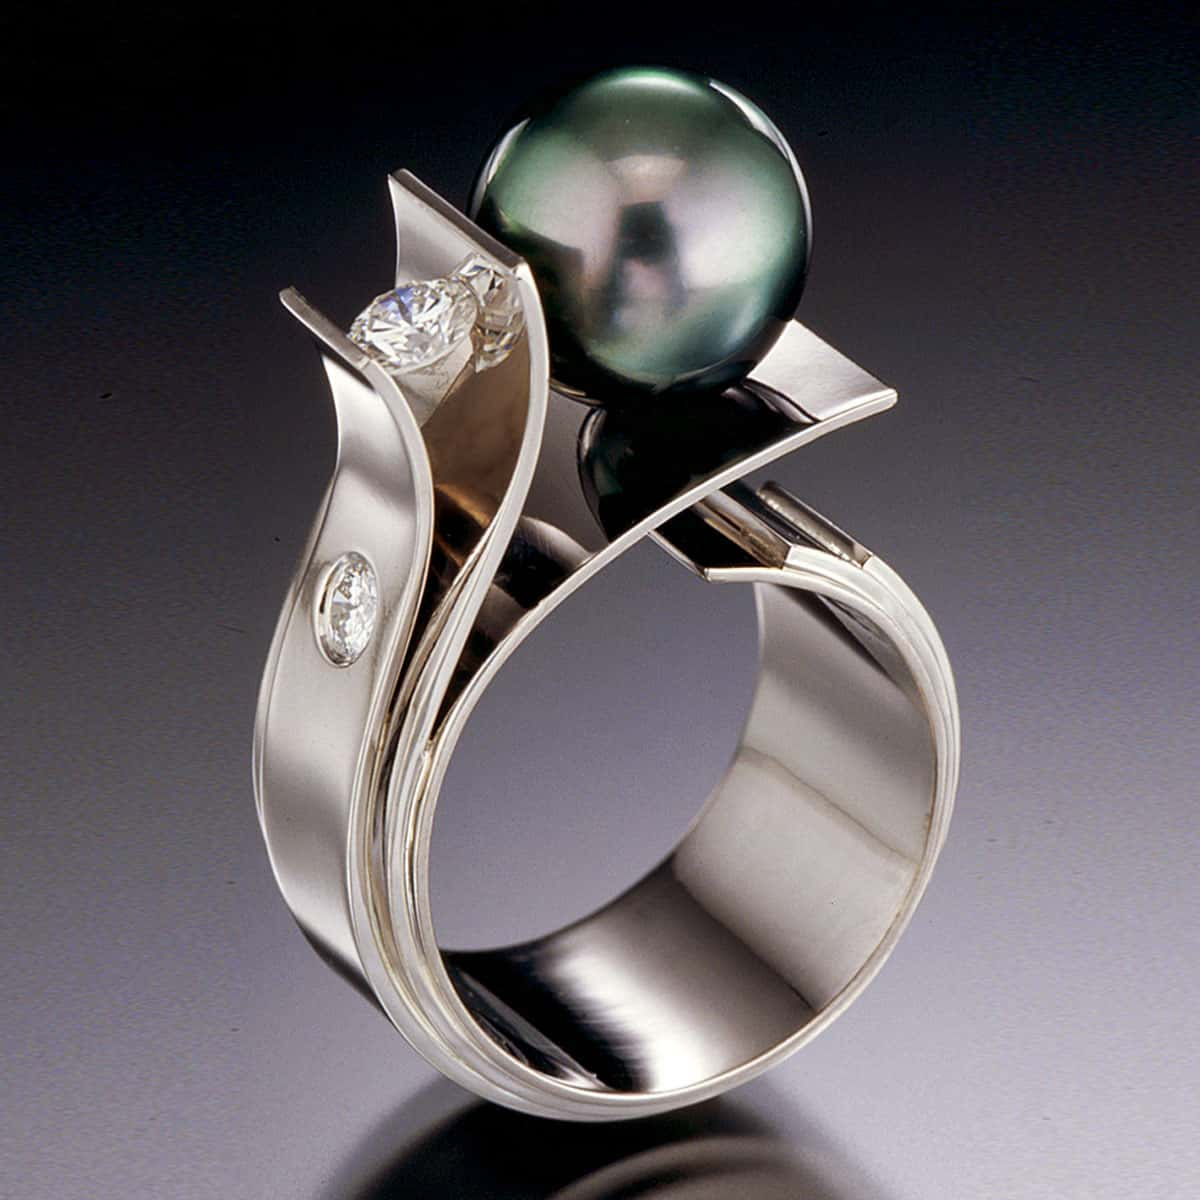 tahitian pearl trophy winner fiore del mare ring